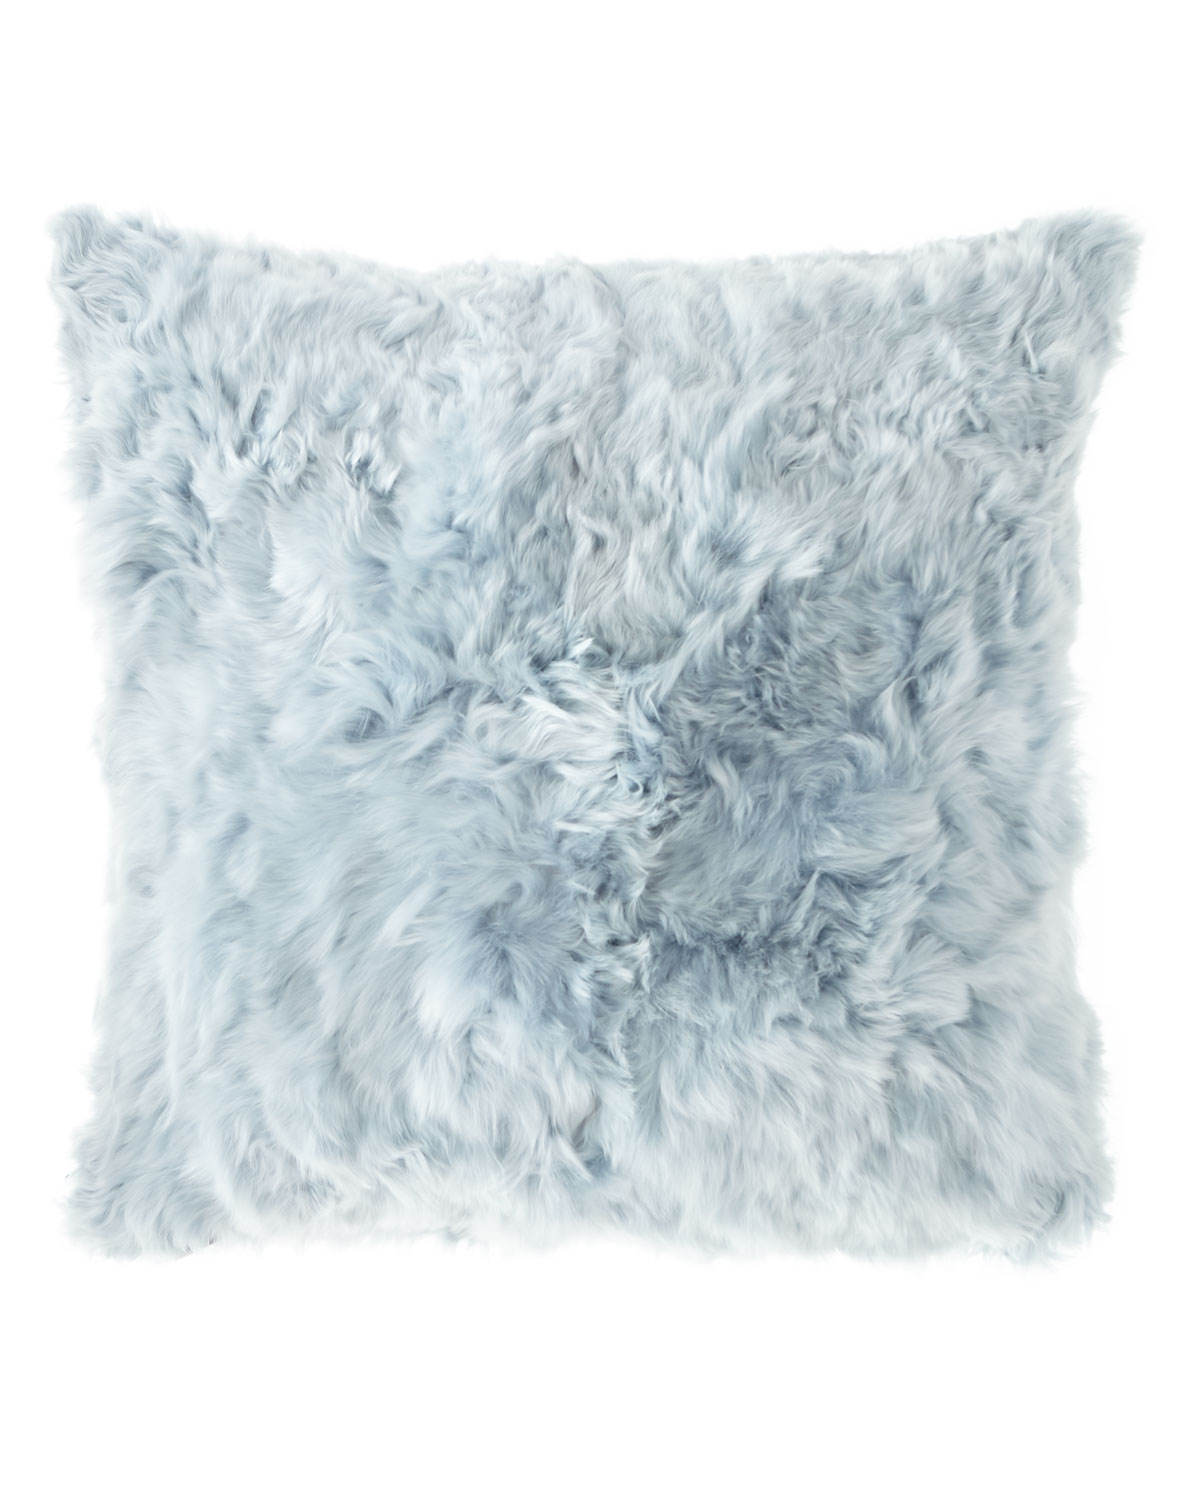 Suri Alpaca Square Pillow